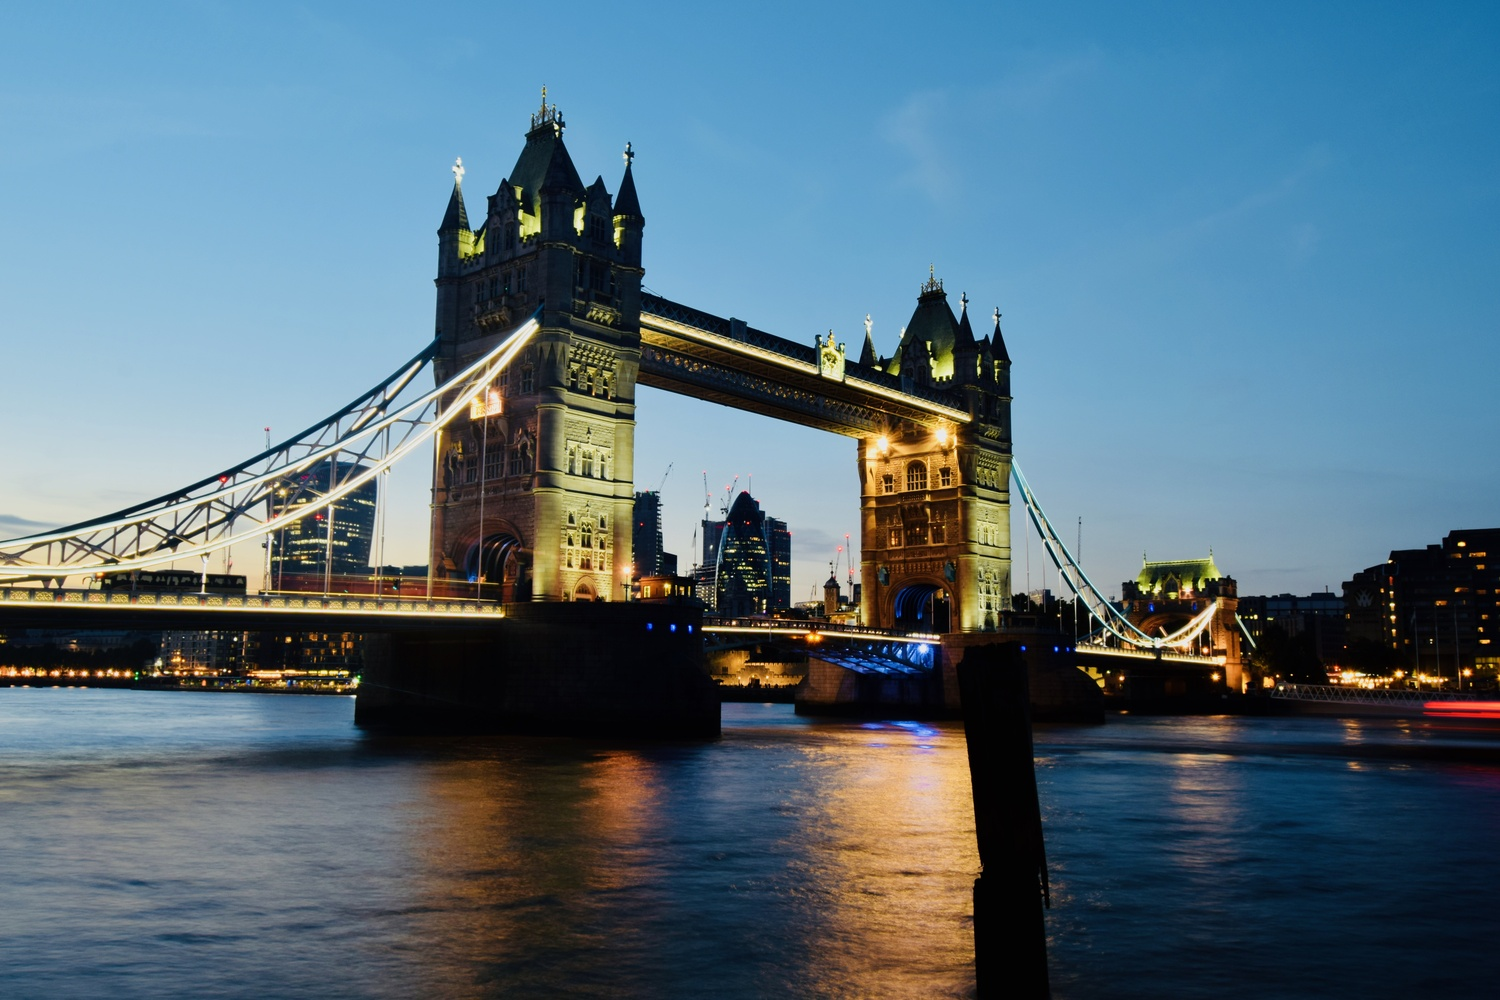 Tower Bridge At Dusk by Andrew Hunter